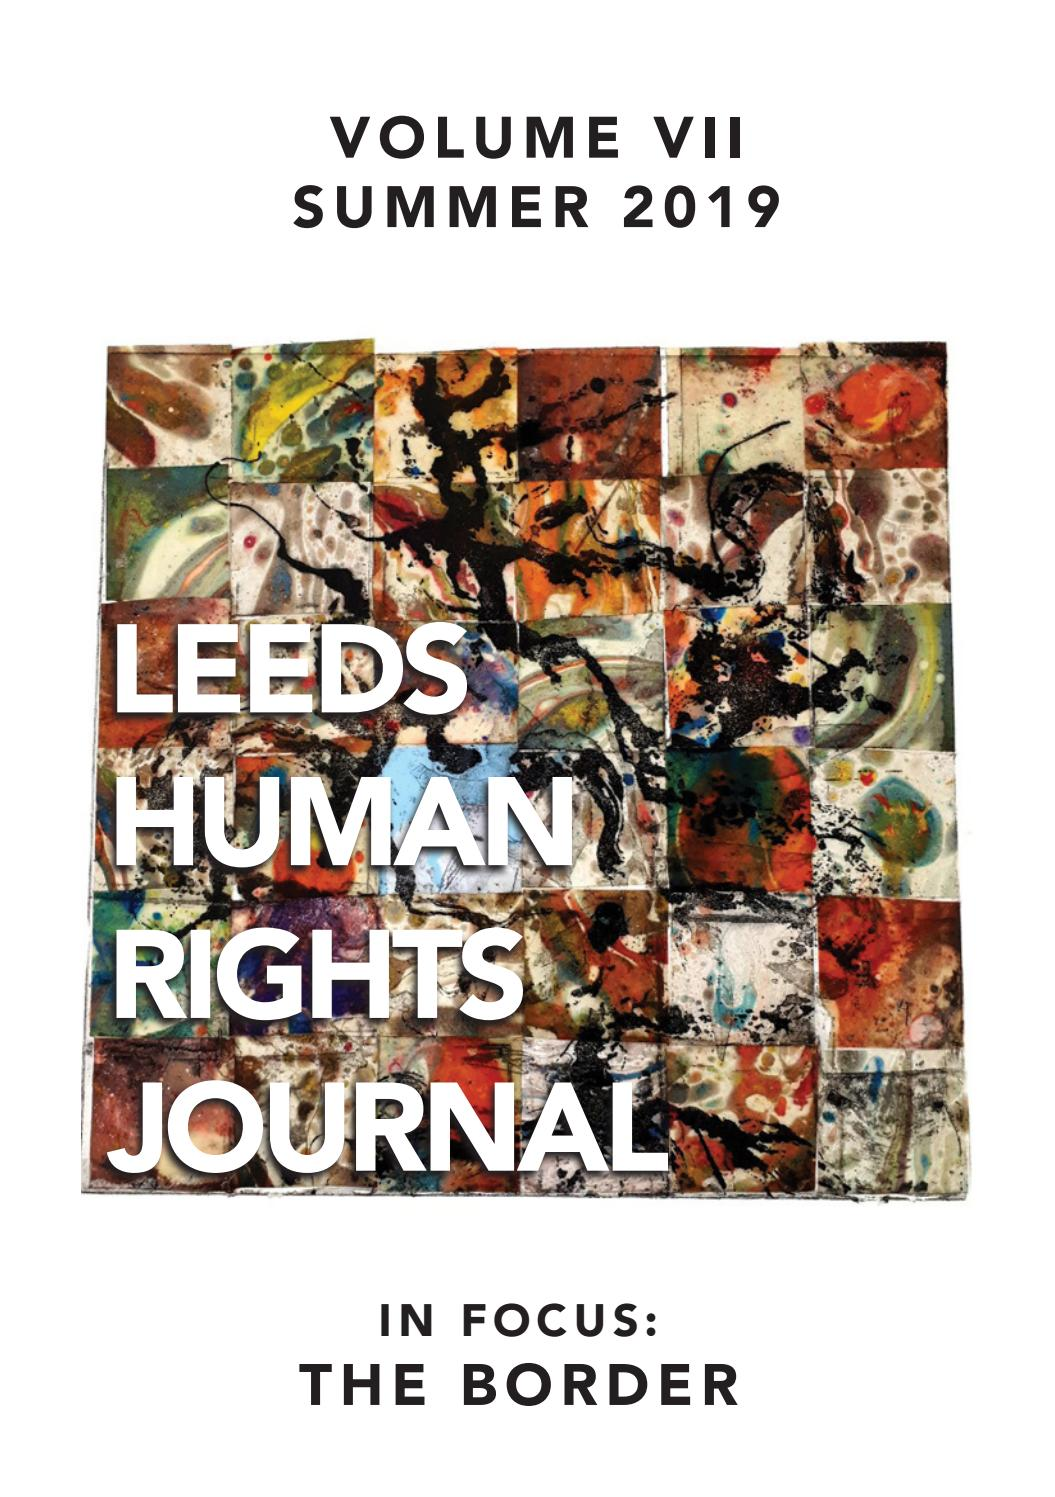 Avis Sur Le Site Home24 university of leeds human rights journal - volume 7, issue 1